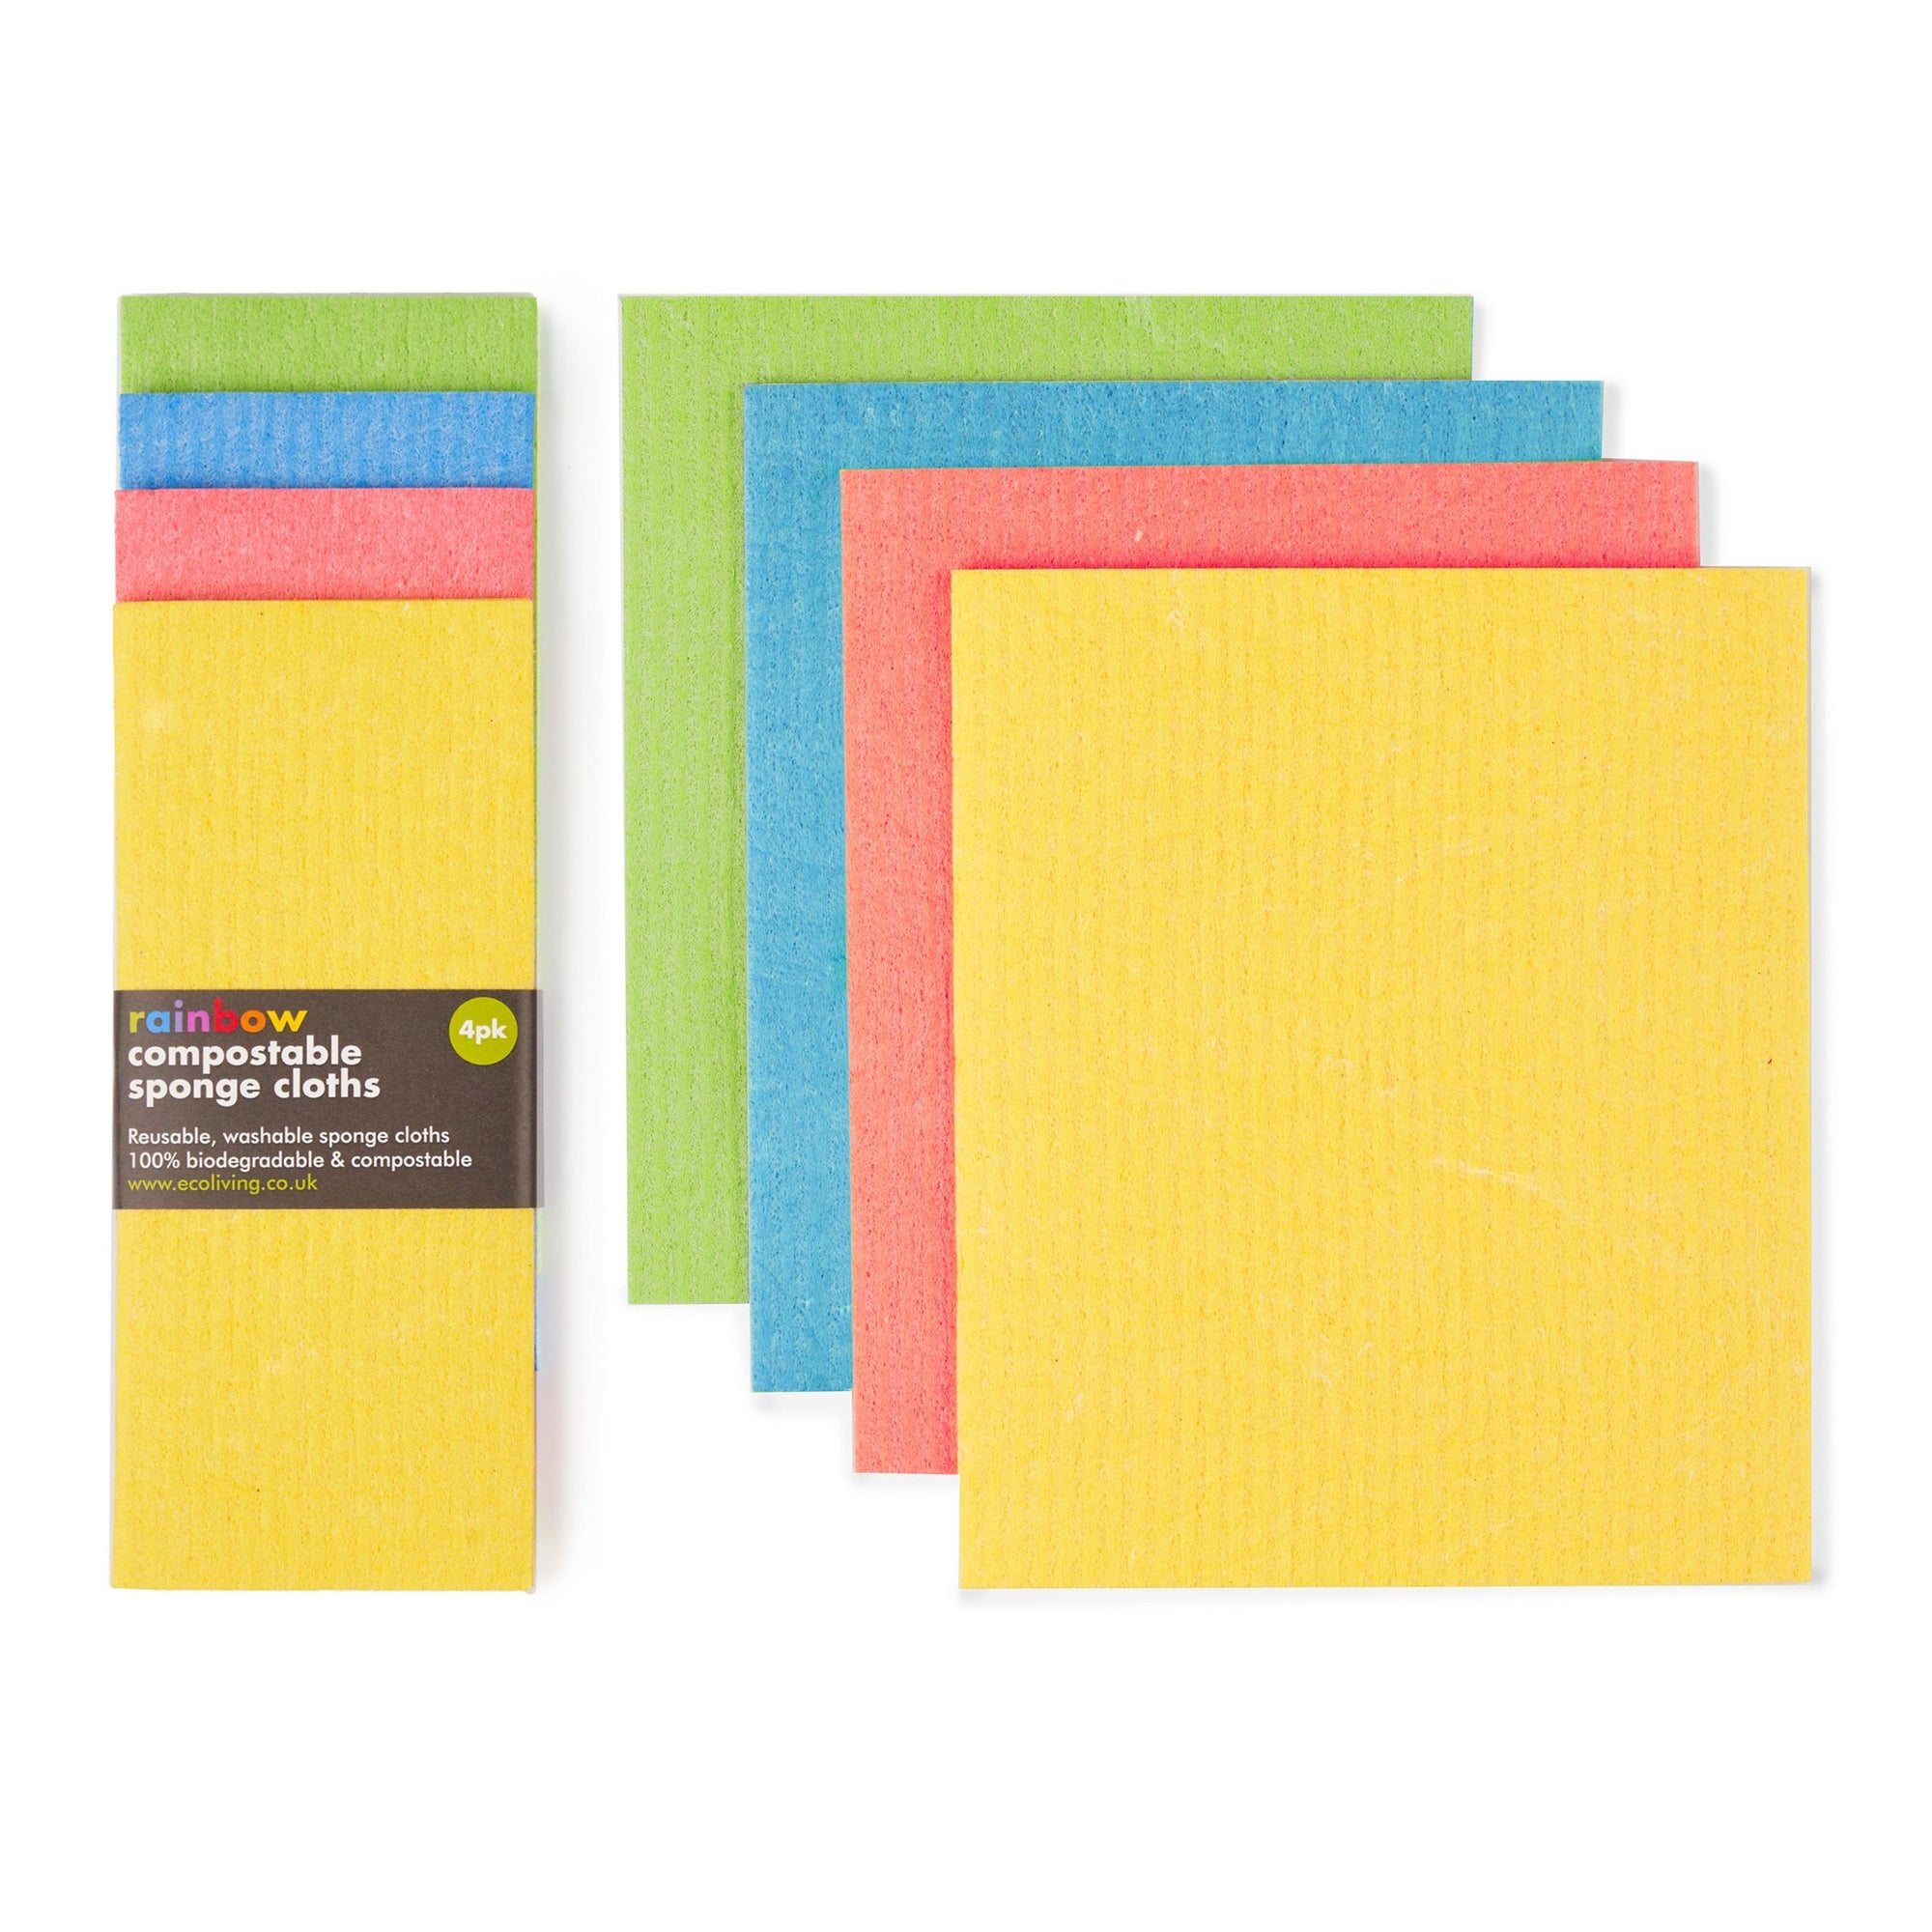 Compostable Sponge Cleaning Cloths. 4 Pack Elephant Box